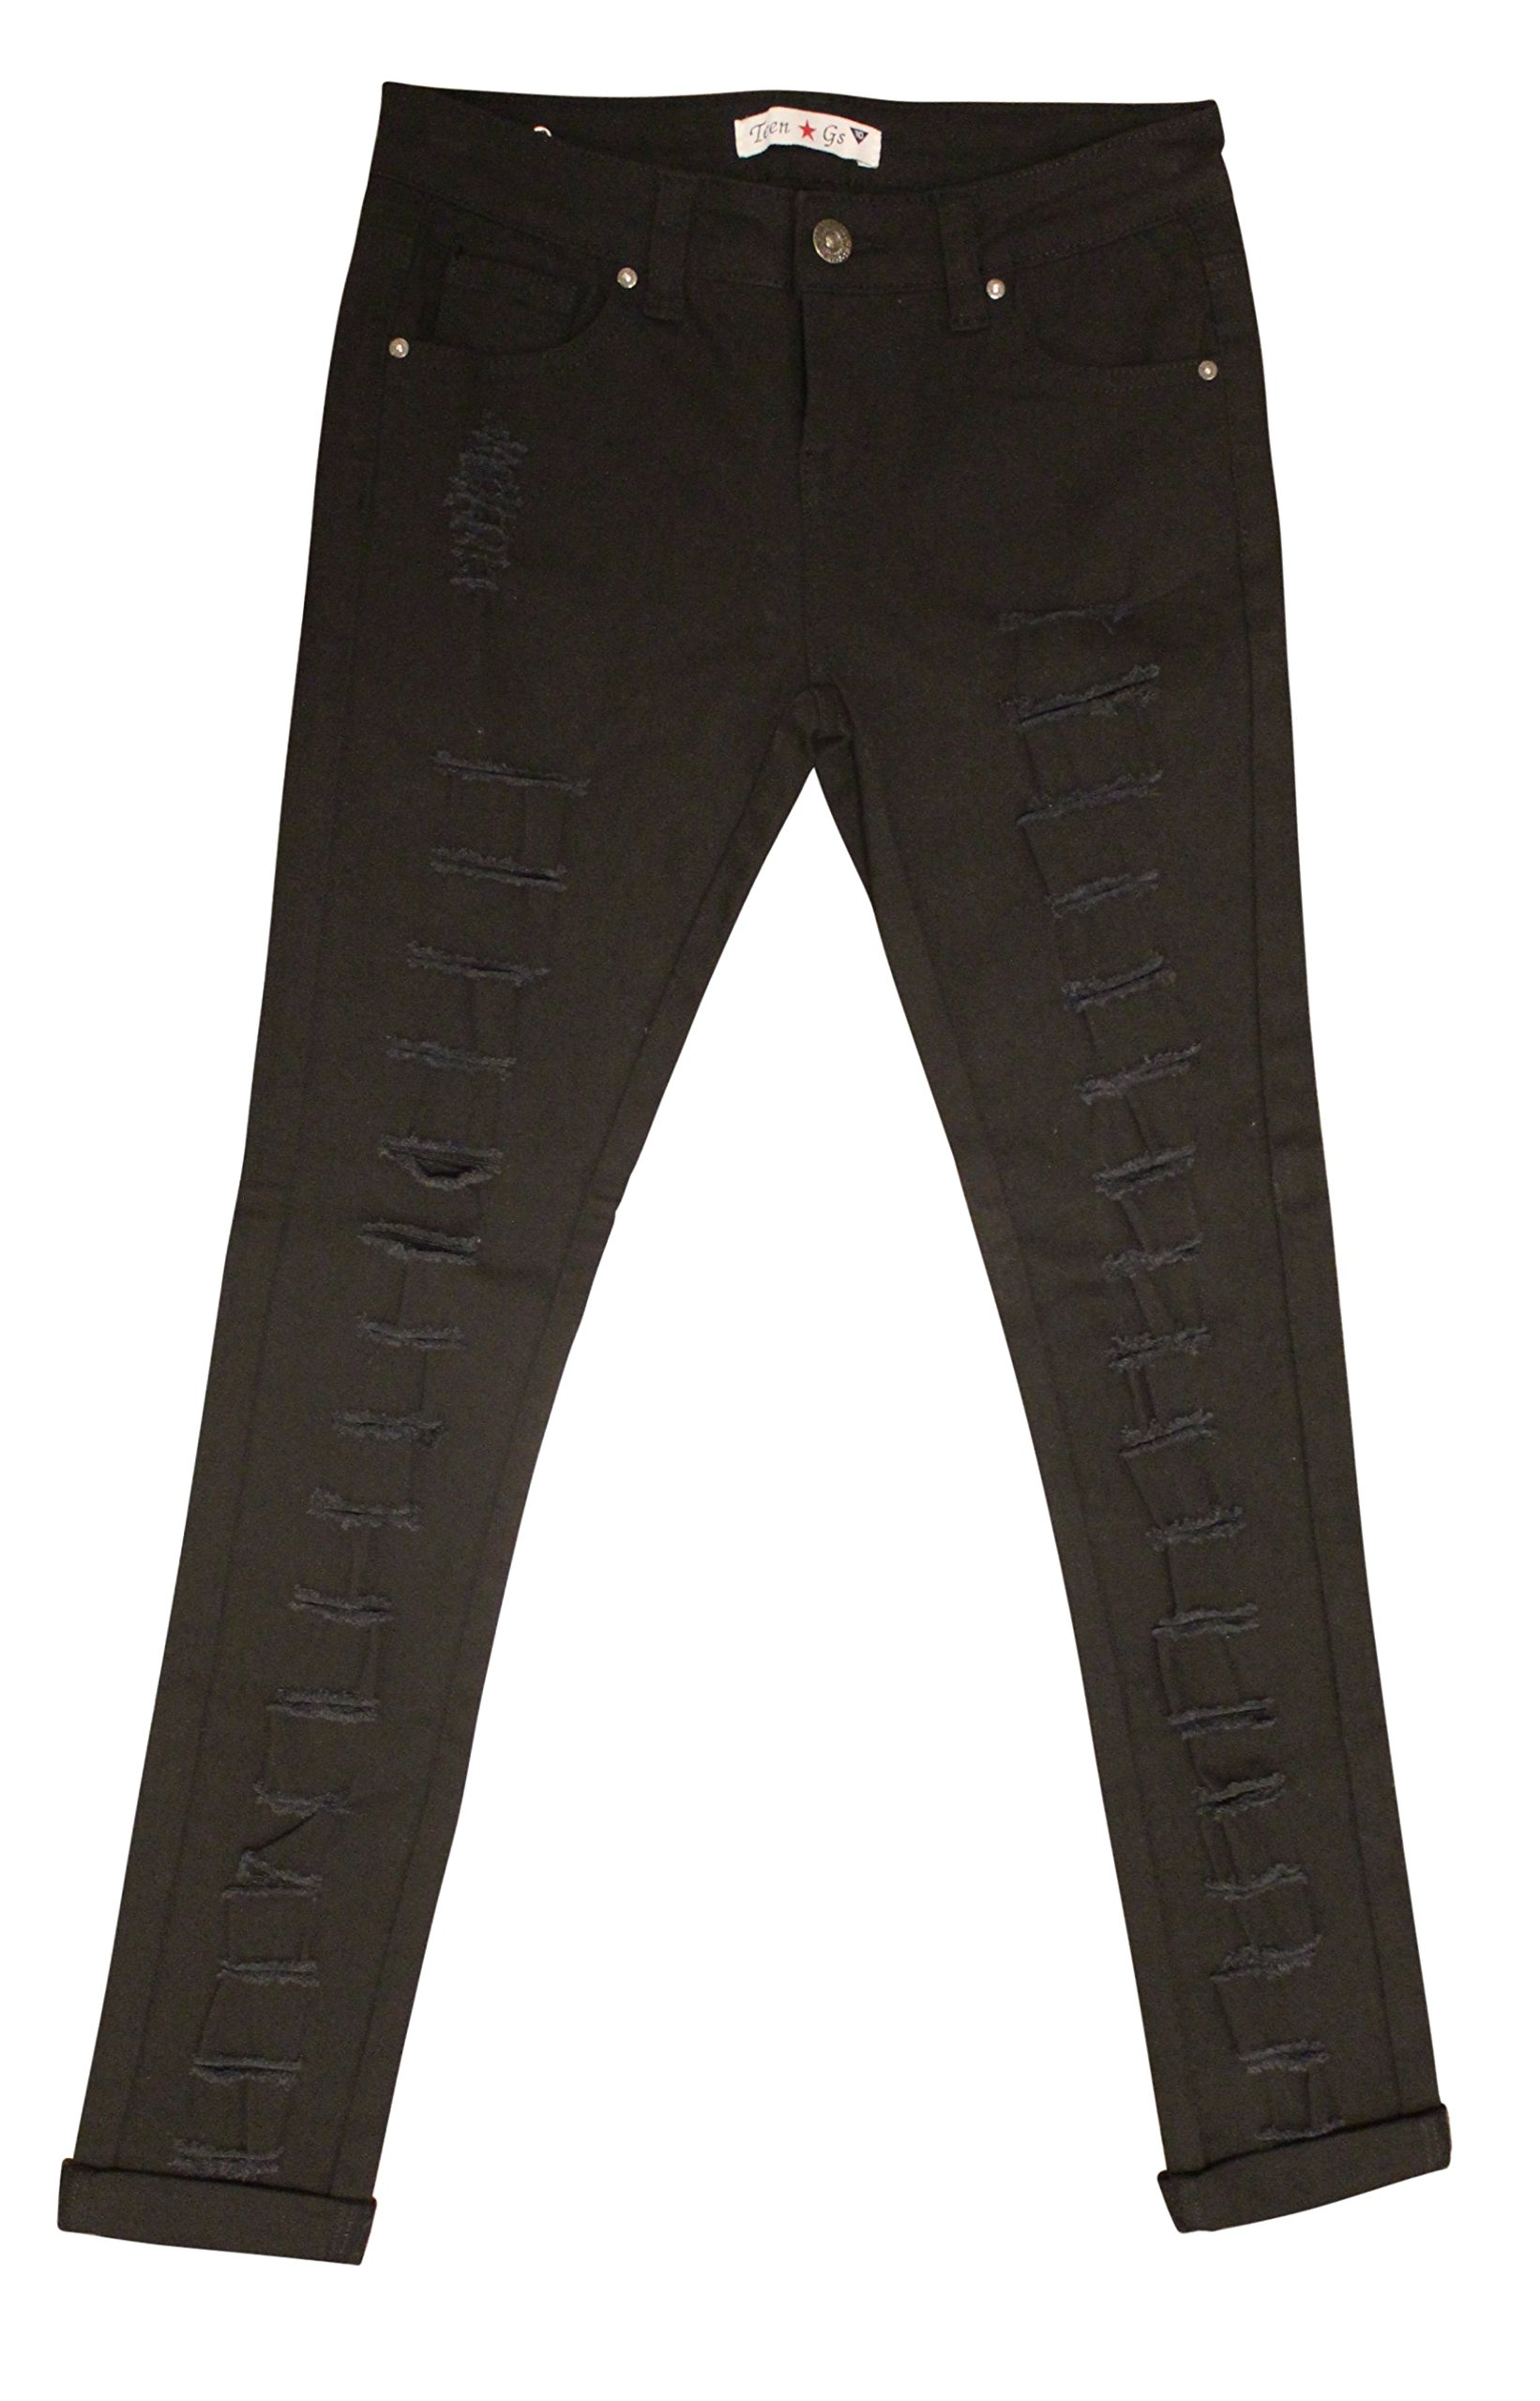 Teen G's Jeans and Twill for Girls by Skinny Jeans for Girls with Ripped Denim and Distressed Stretch Fabric Slim Fit Pants,kp33 (16, Black) by Teen G's (Image #1)